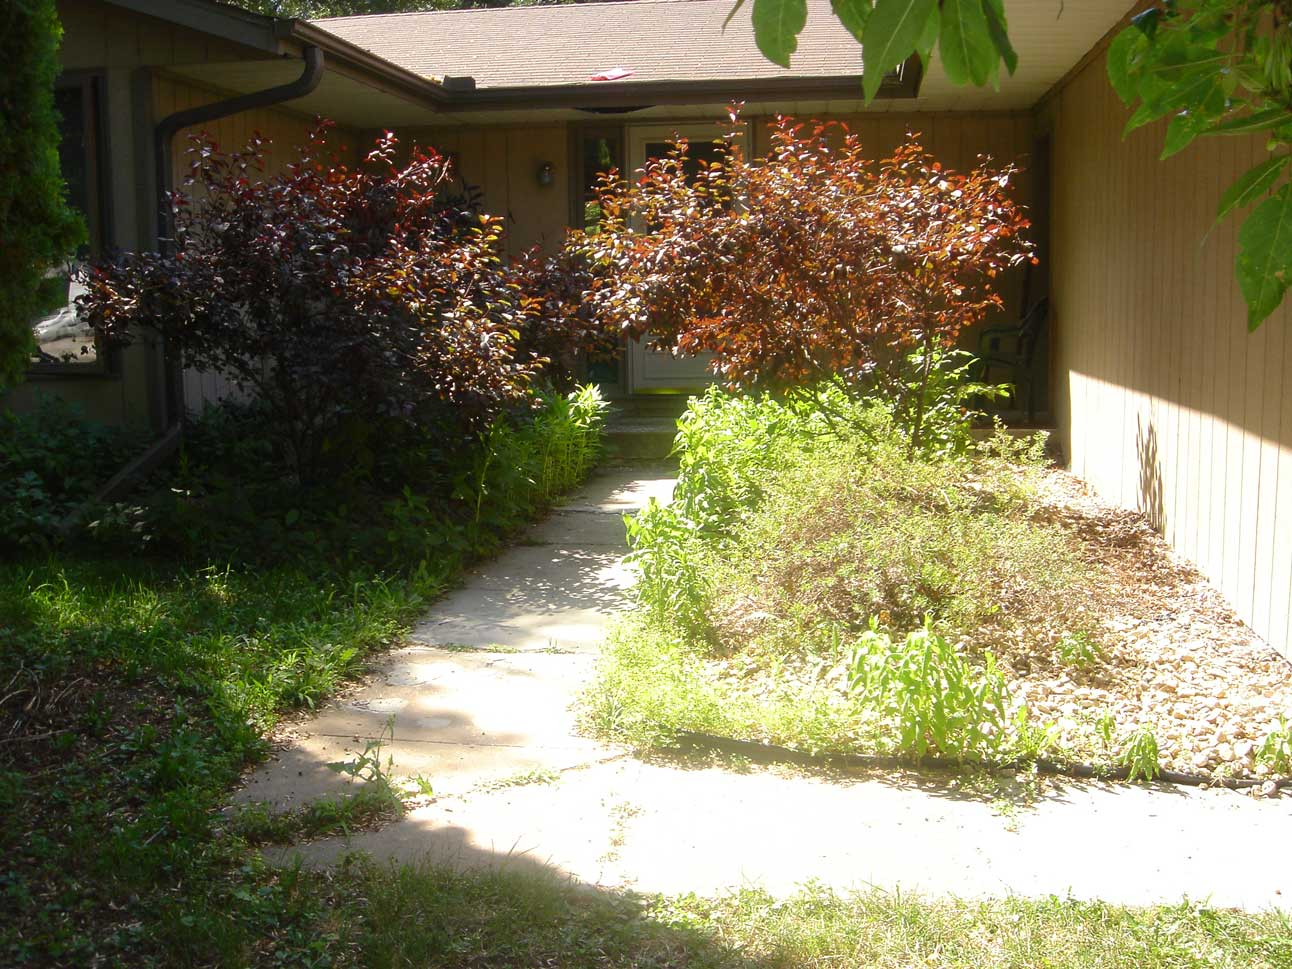 A weedy, overgrown front entrance is a problem for many homeowners.